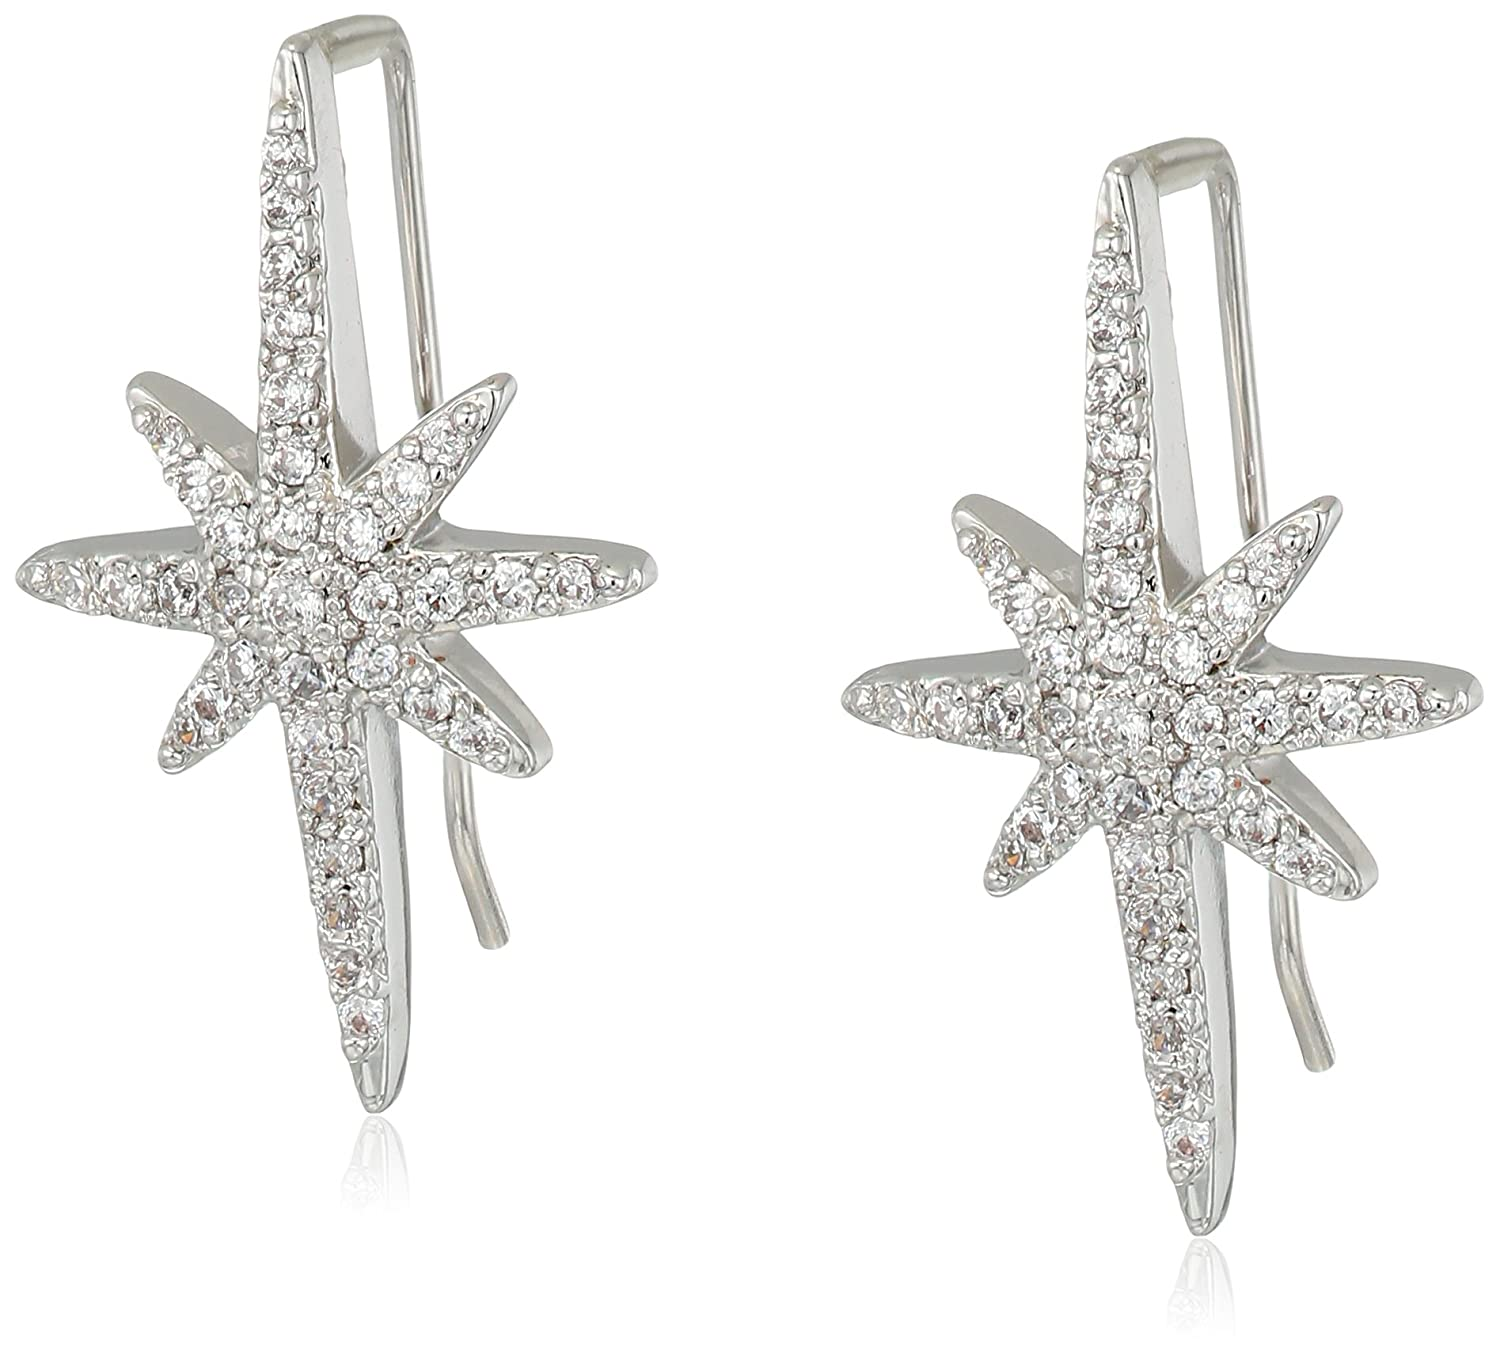 Vintage Style Jewelry, Retro Jewelry Betsey Johnson Womens Blue by Betsey Johnson Silver Tone Earrings Climbers with Pave Crystal Accented Starburst $42.00 AT vintagedancer.com